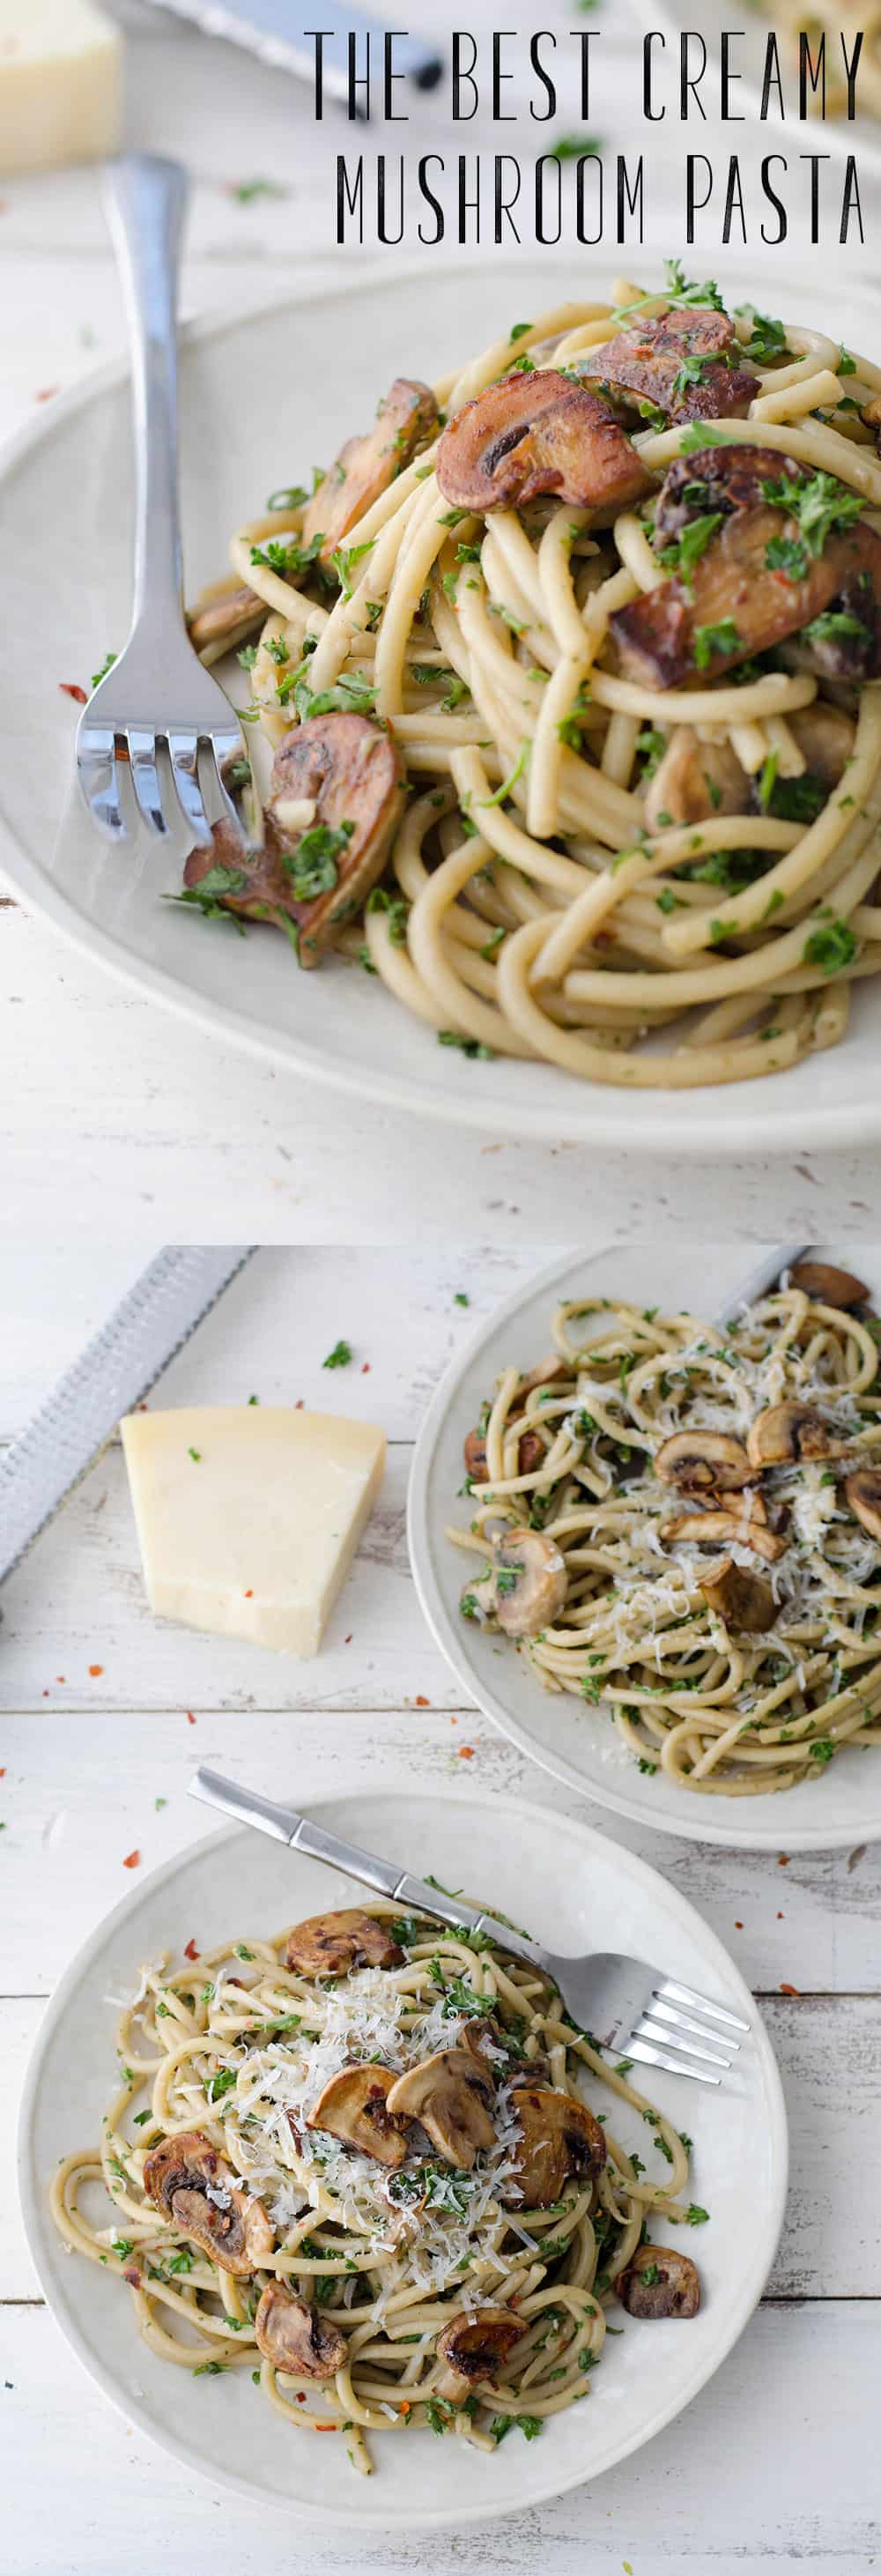 The BEST creamy mushroom pasta! Made with a secret ingredient, this pasta is packed with savory umami flavor and ready in just 20 minutes! Save this for weeknight dinners.   www.delishknowledge.com